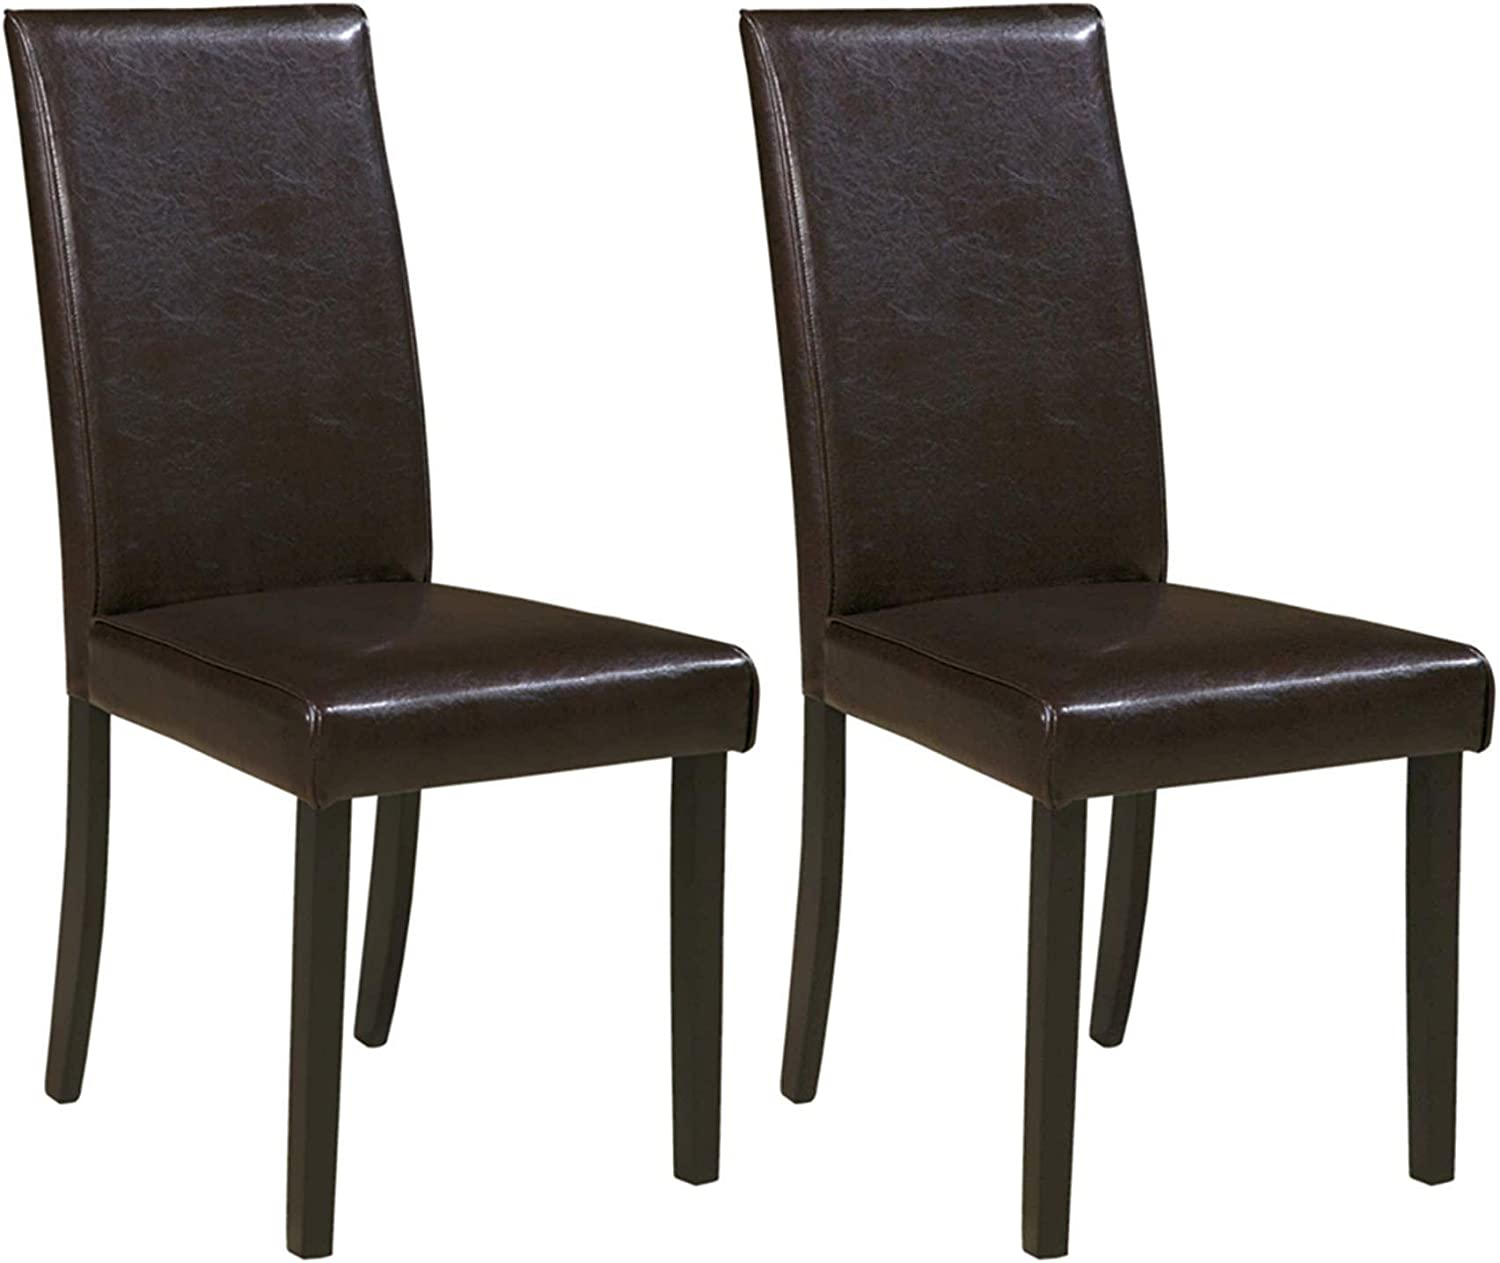 Ashley Furniture Signature Design - Kimonte Dining Room Chair - Contemporary - Set of 2 - Brown